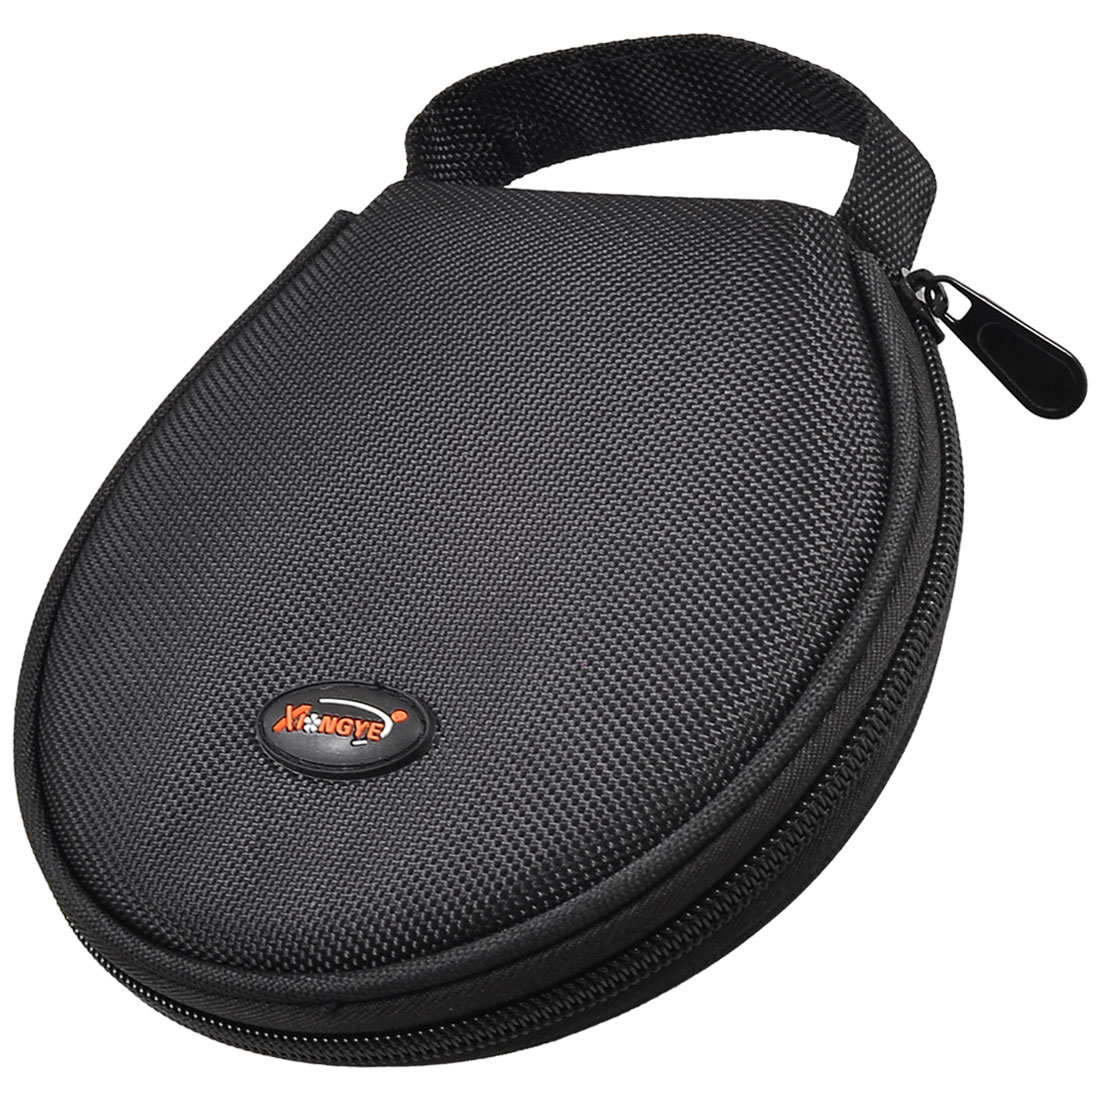 Round 20 Pcs Capacity CD Organizer DVD Carrying Case Holder Black